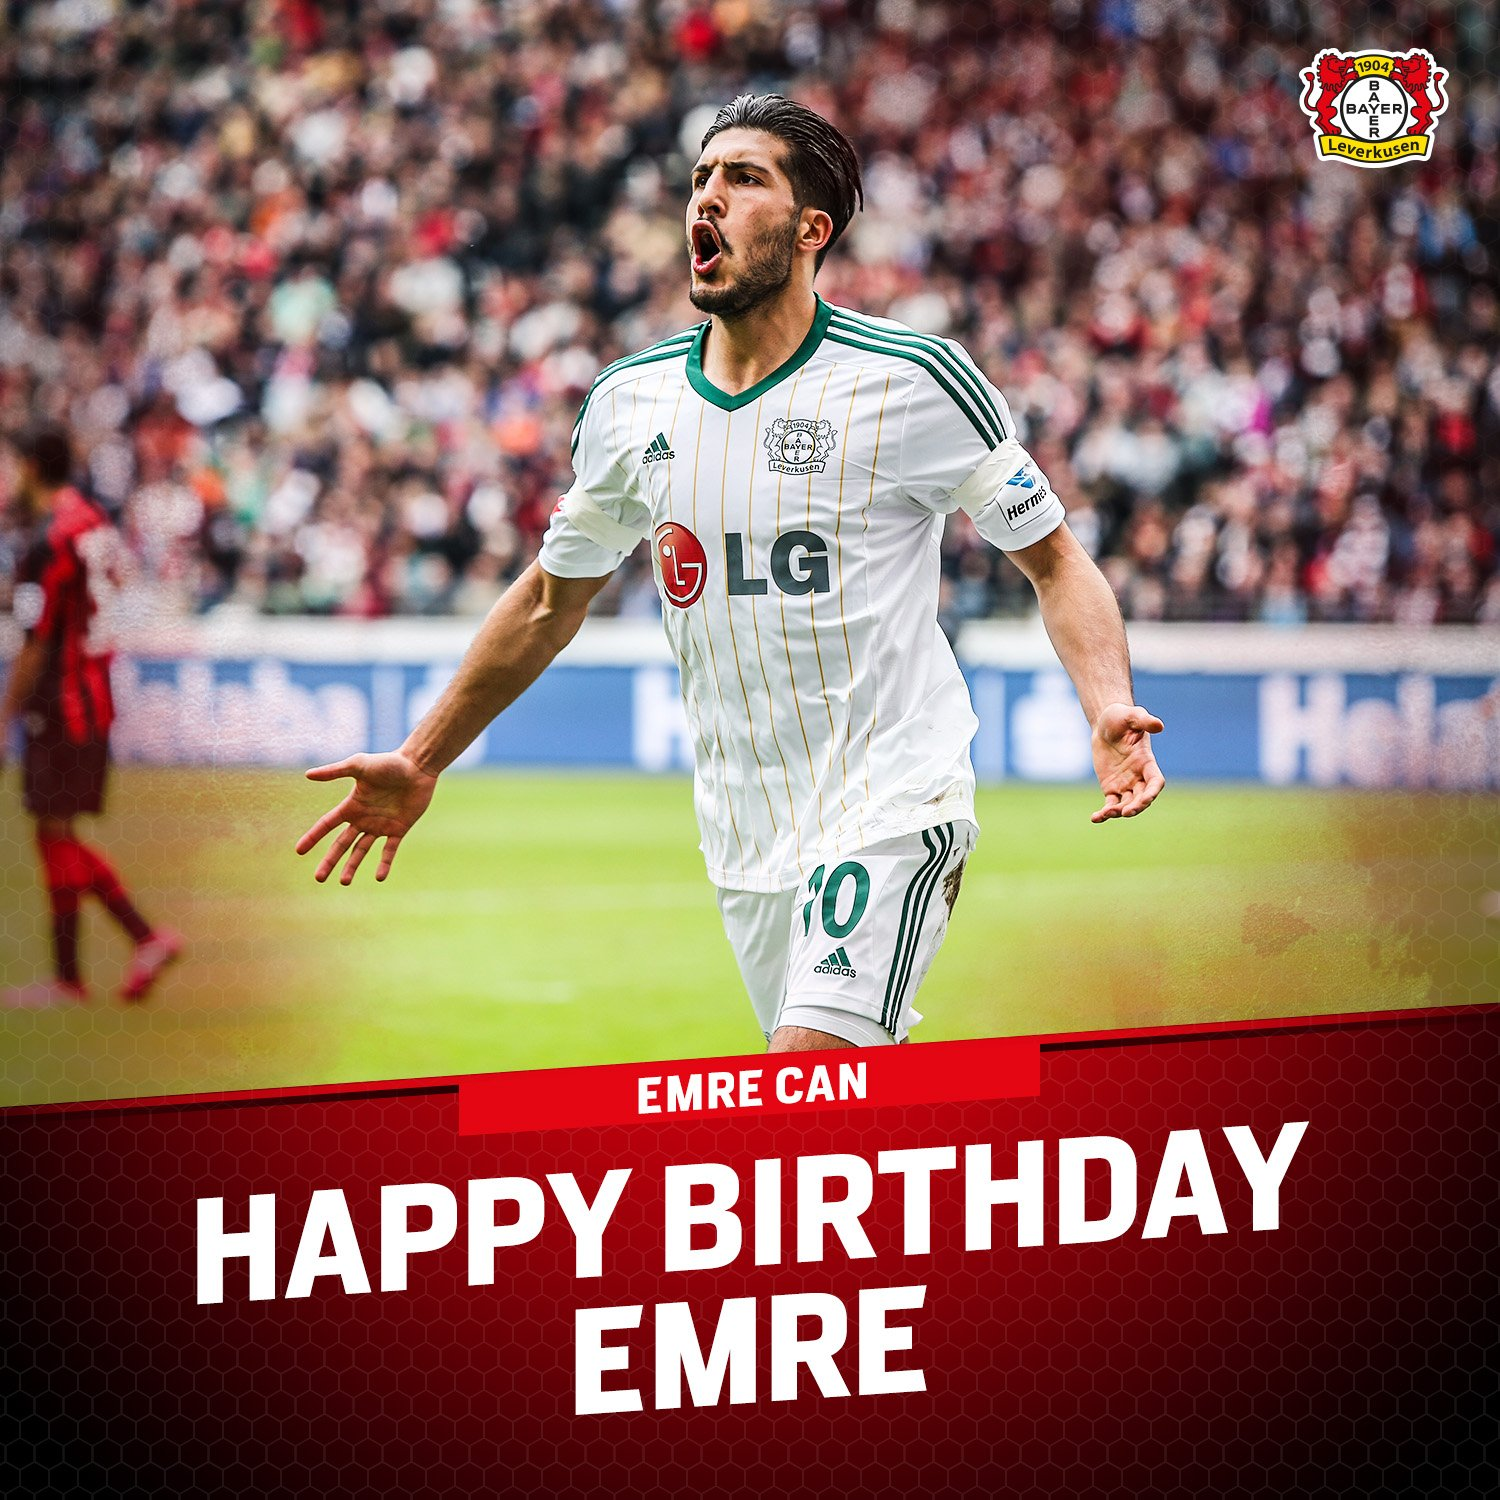 He\s played for both sides of We\re wishing a very happy birthday to former   Emre Can!